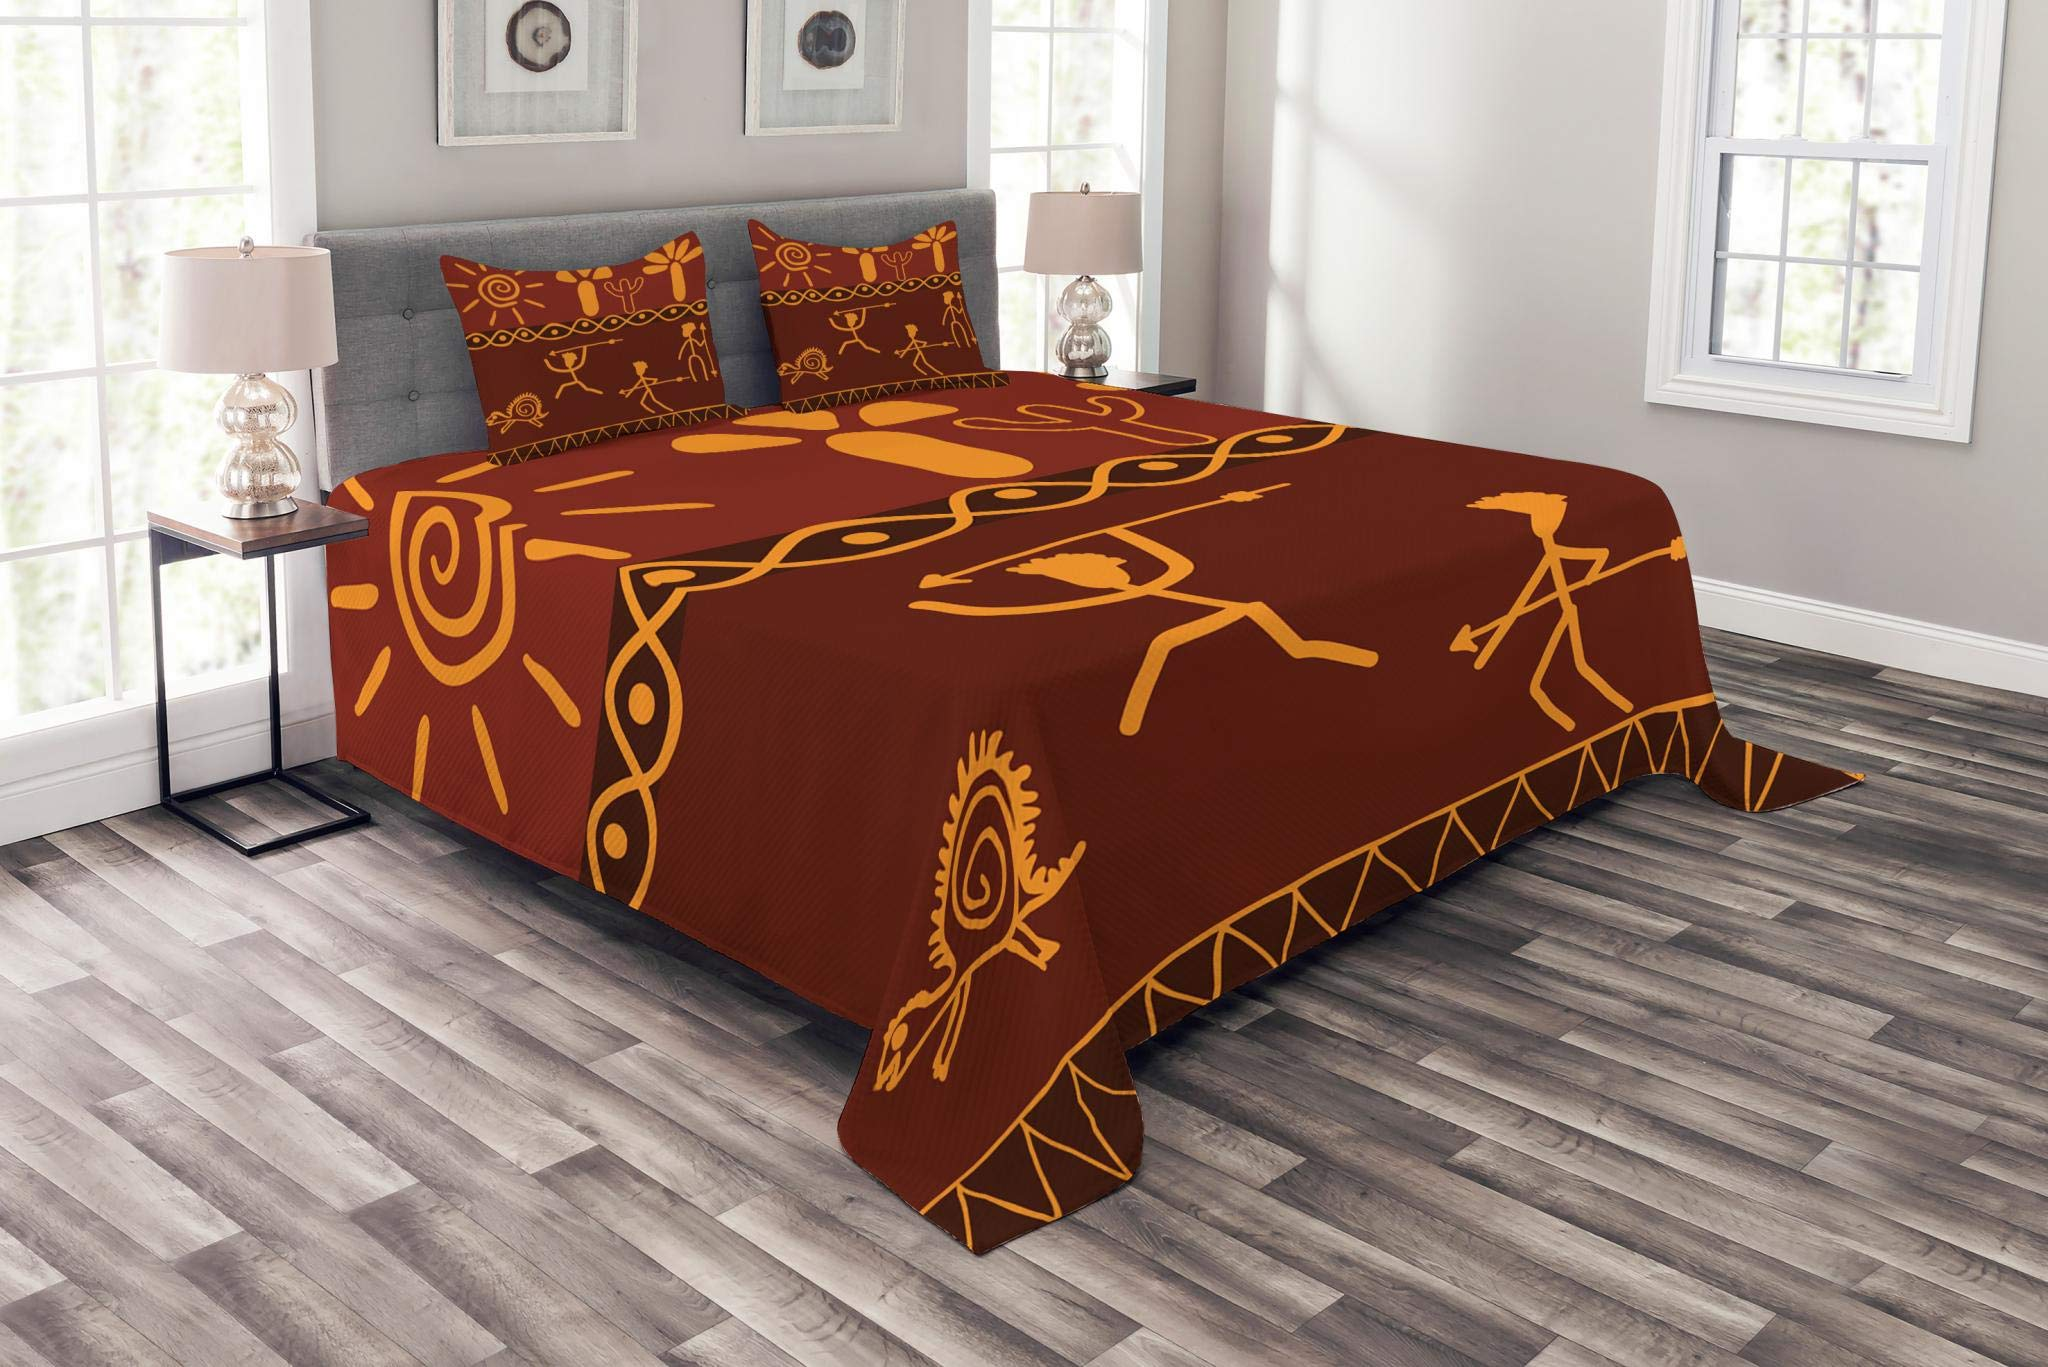 Lunarable Tribal Bedspread Set Queen Size, African Tribe Hunting Scene Wild Animal Casual Old Days Artistic Ethnic Pattern, Decorative Quilted 3 Piece Coverlet Set with 2 Pillow Shams, Orange Red